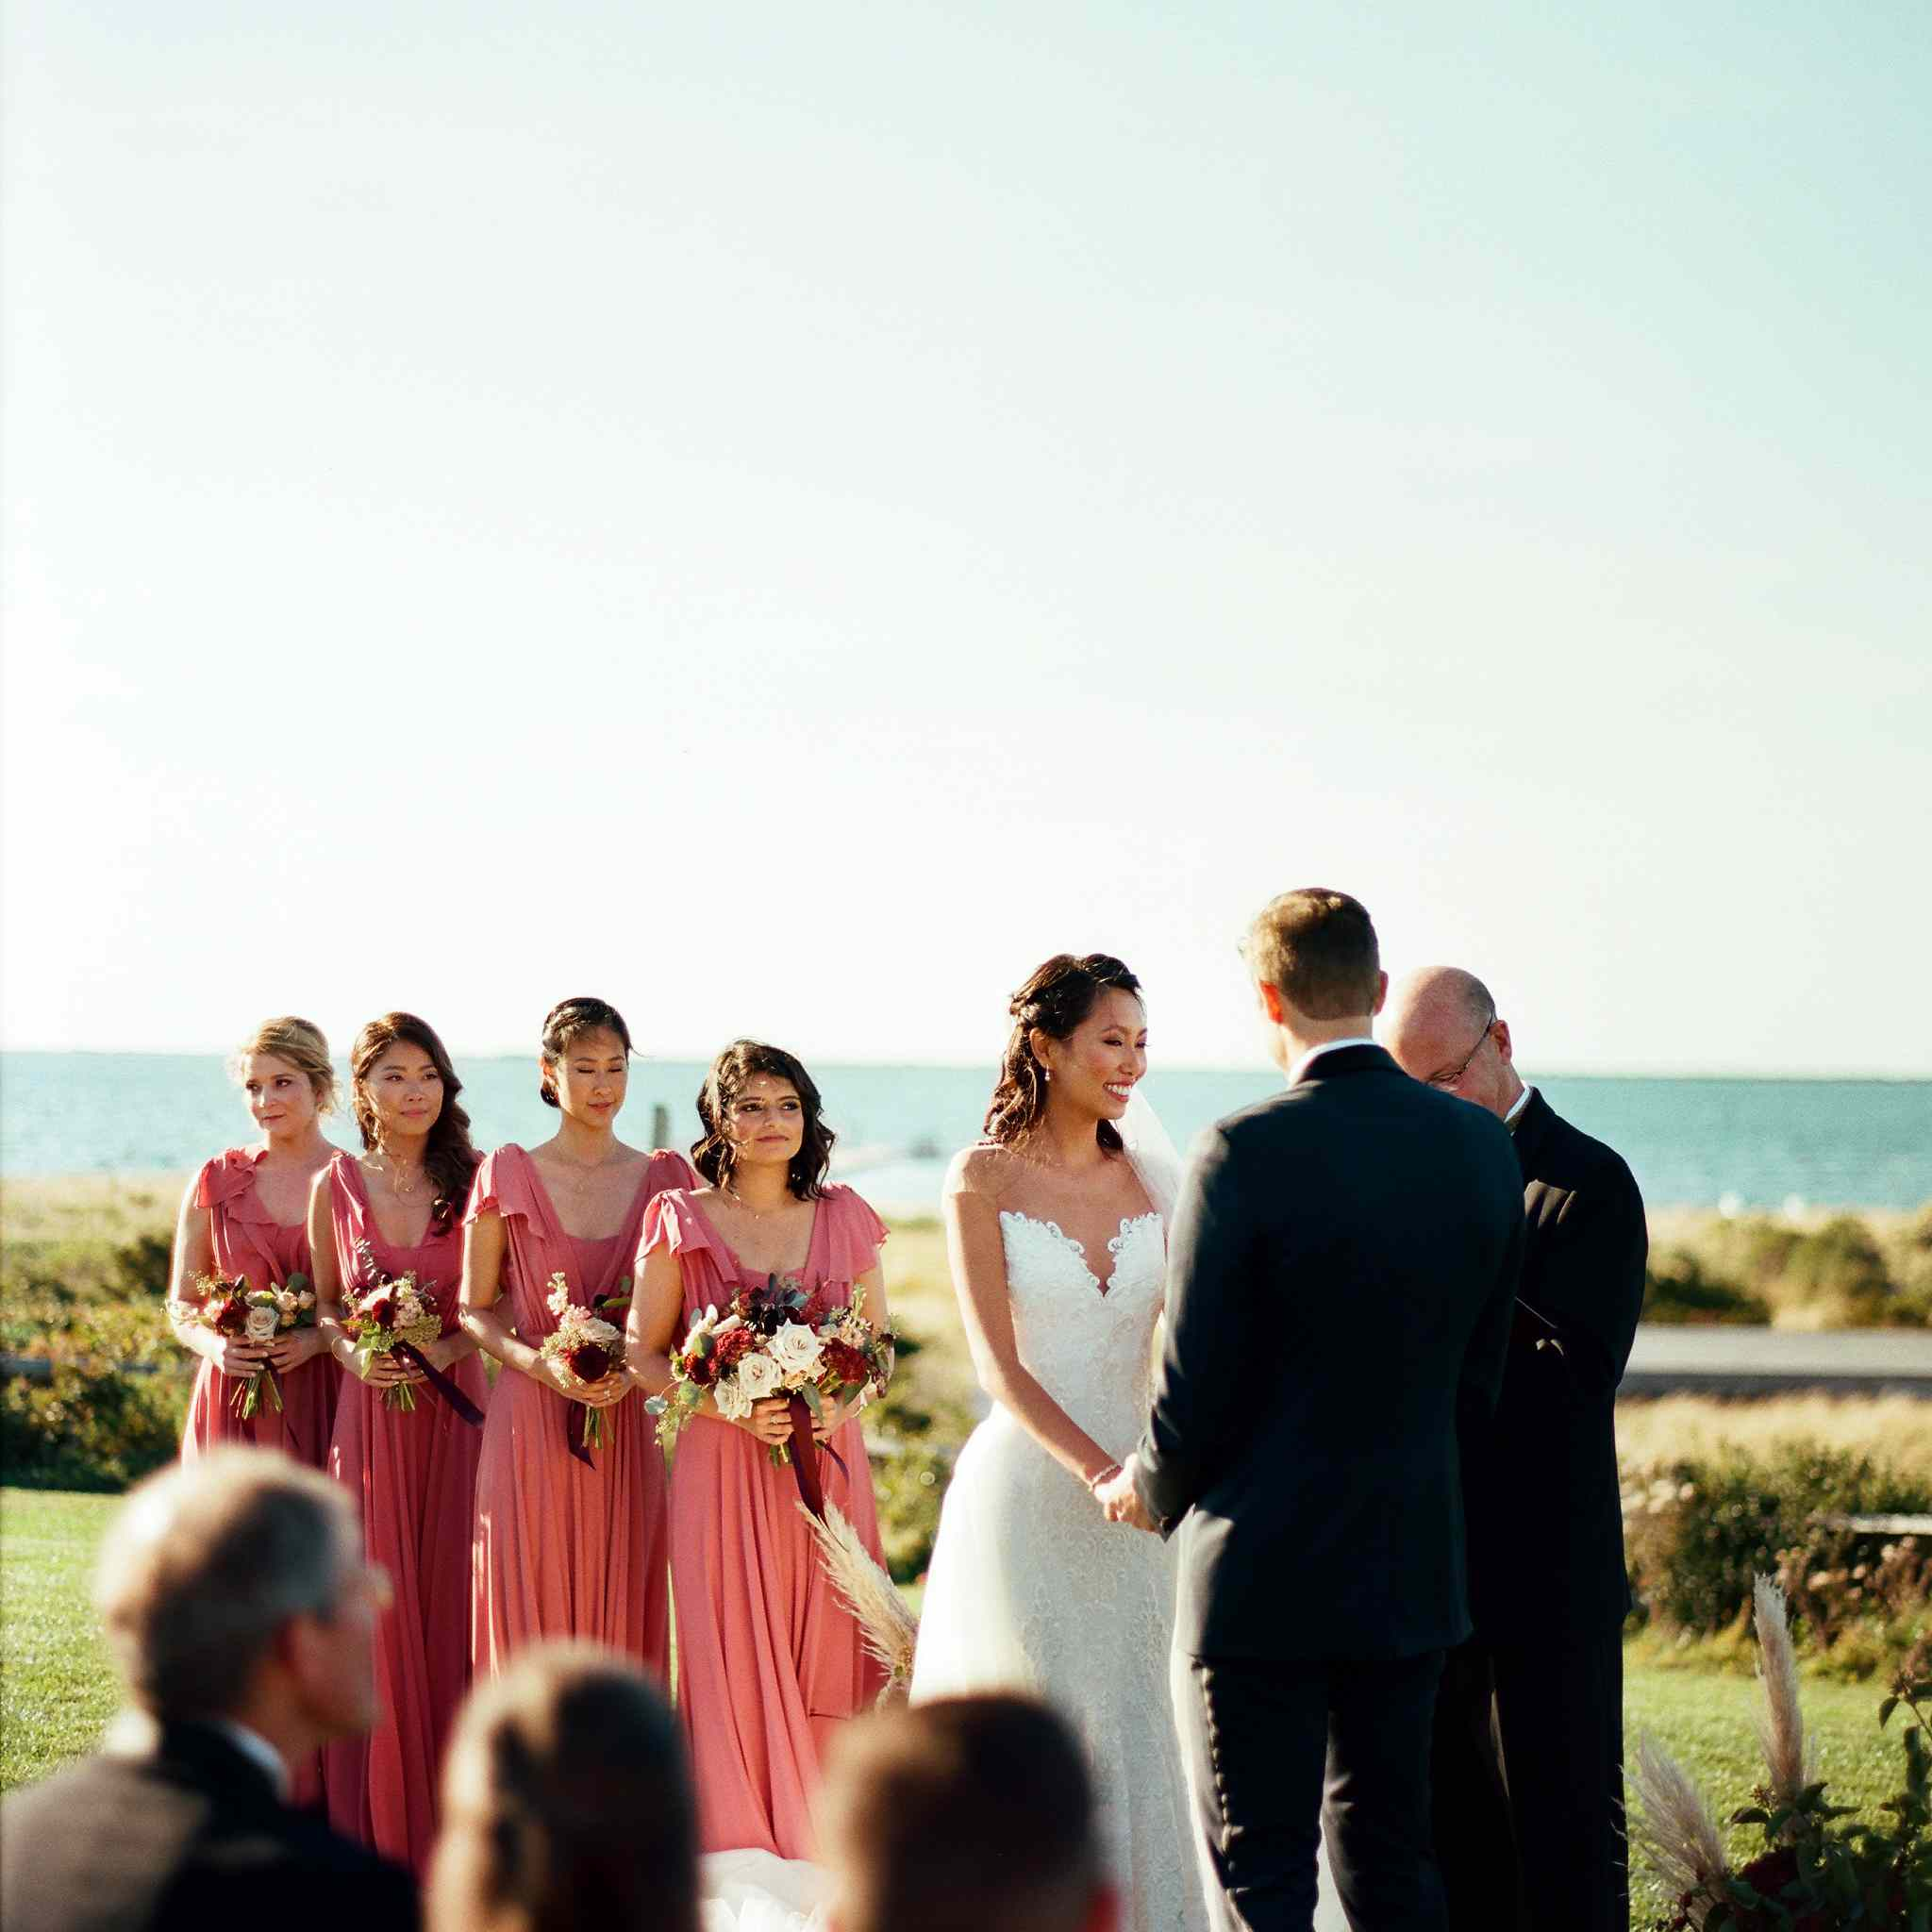 <p>ceremony wedding party couple at altar</p><br><br>